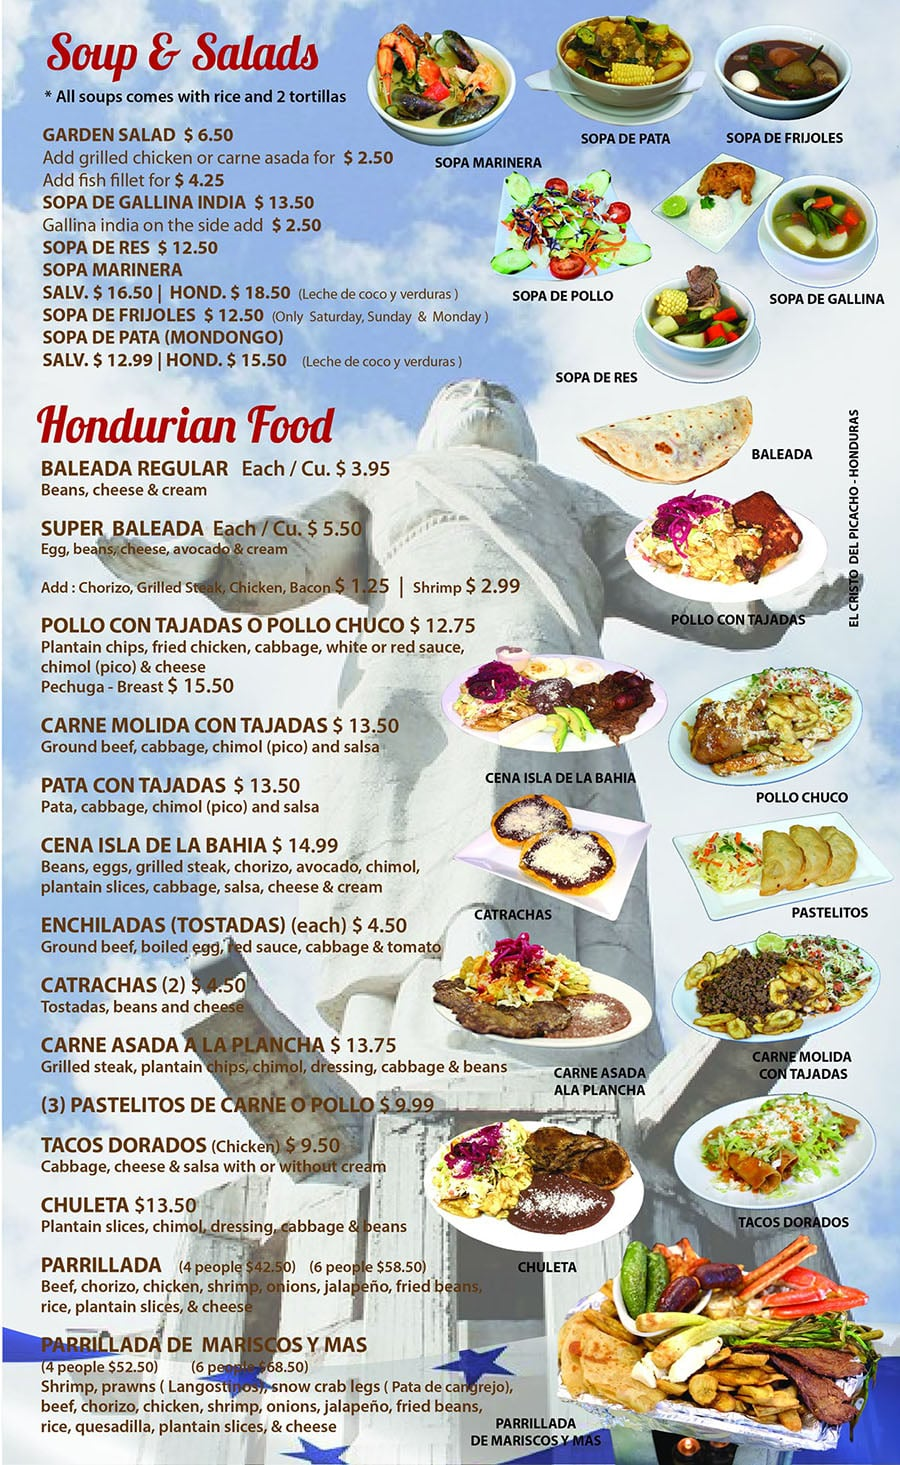 Catrachos Restaurant menu - soups, salds, Hondurian food